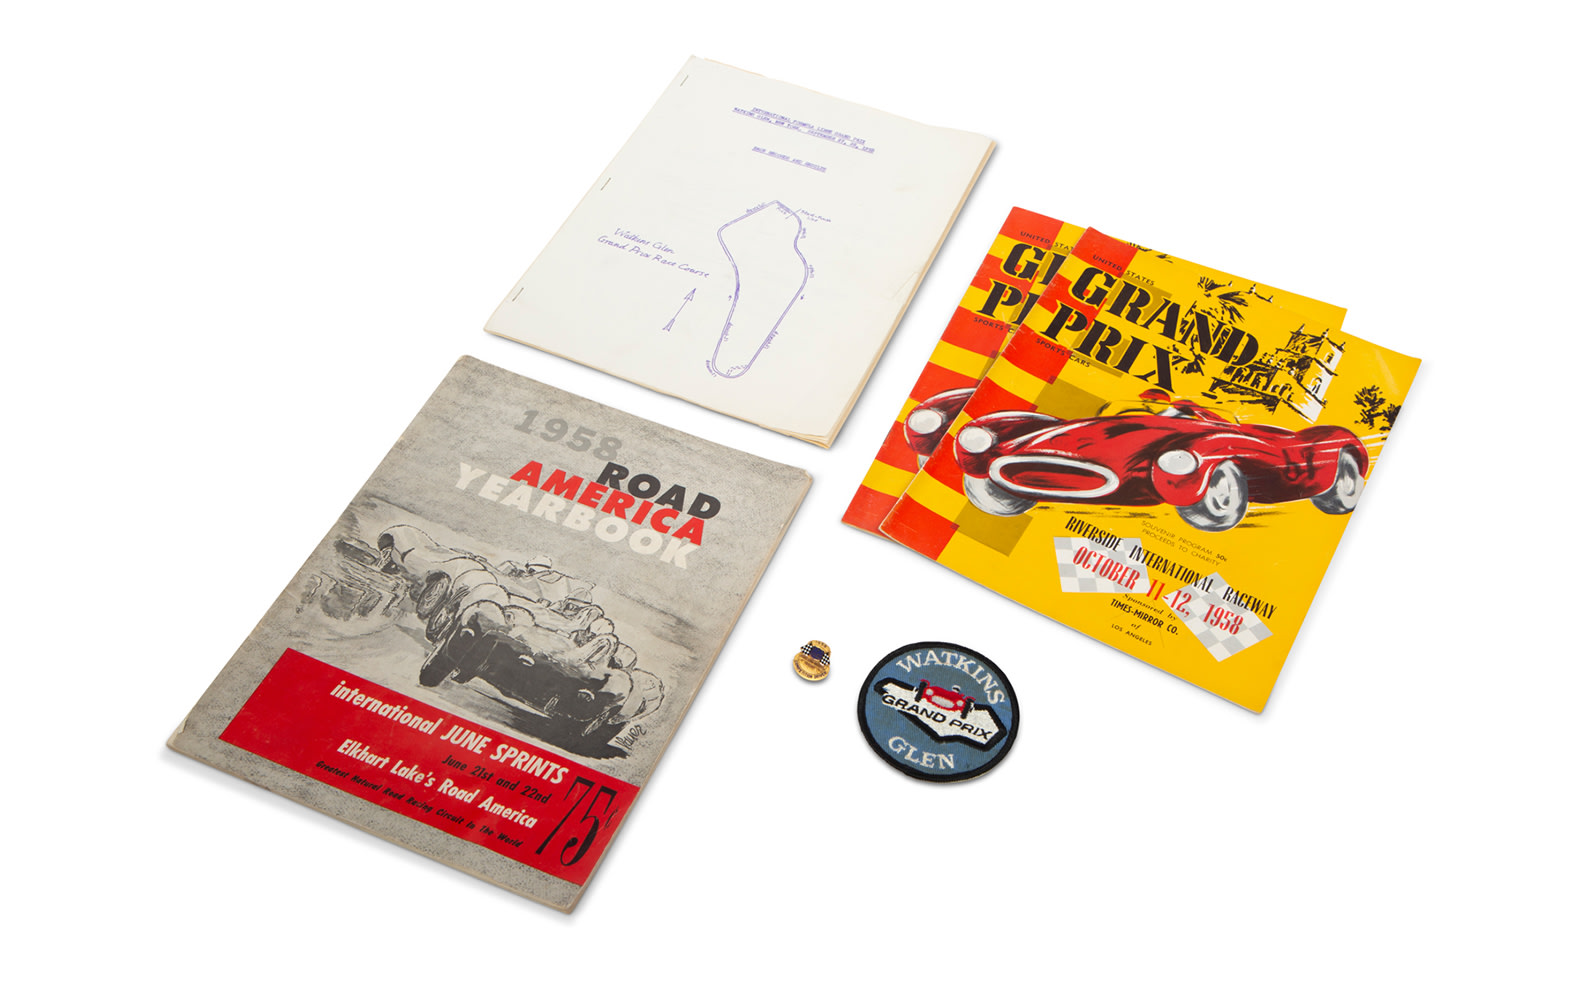 1958 USAC Race Car Driver Pin and Assorted Race Programs for US Venues